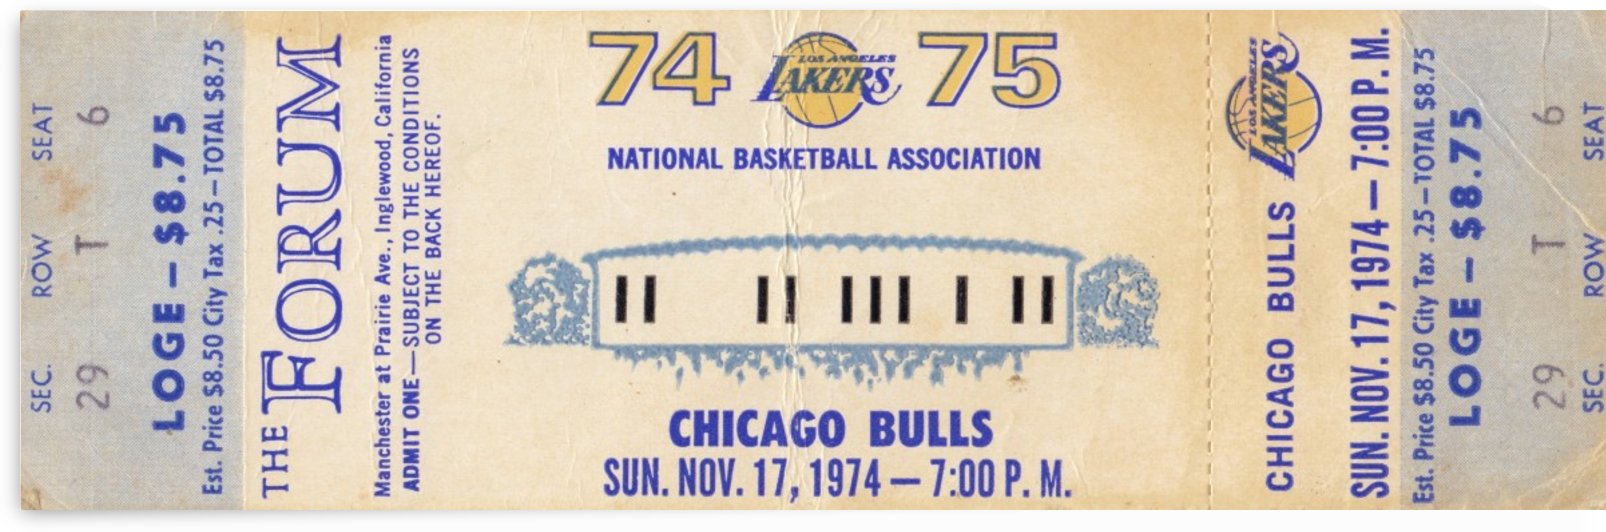 1974_National Basketball Association_Los Angeles Lakers vs. Chicago Bulls_The Forum_NBA Ticket Stub by Row One Brand